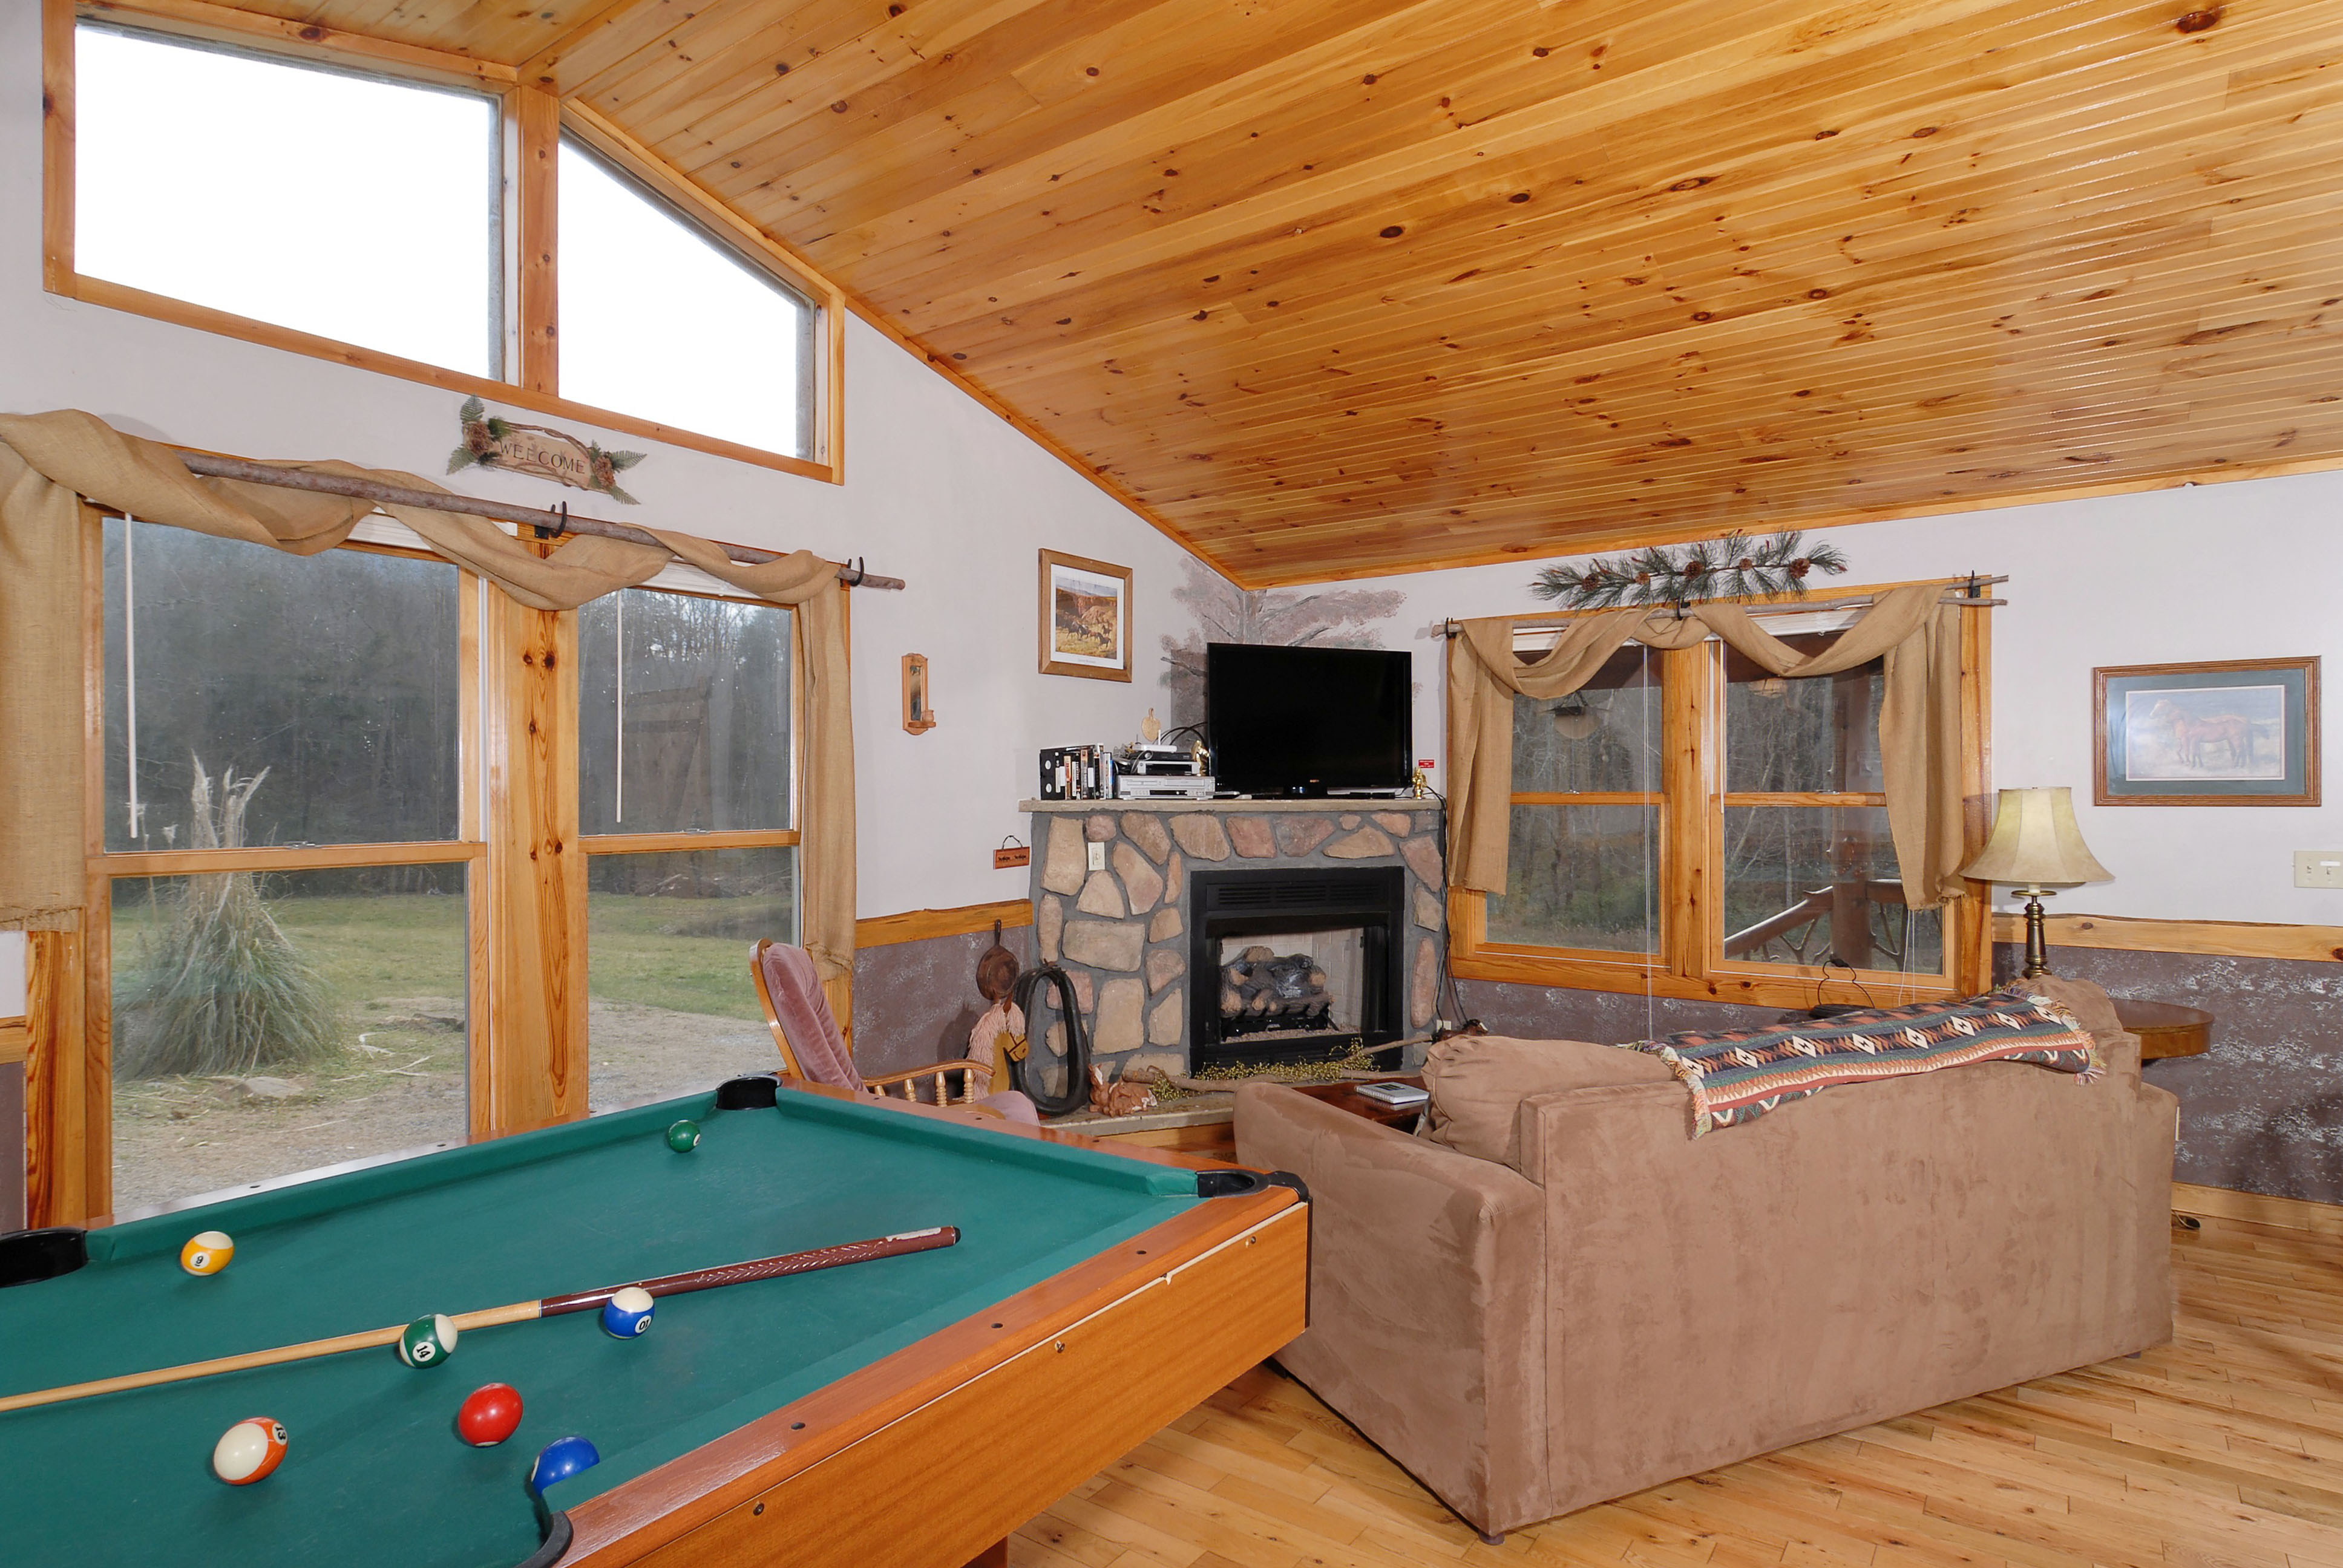 mountain gatlinburg size pool rent yorkshire cottages plans holiday to barrington cabin homes private aquatech house pigeon pet cotswold swimming england decorations rentals pools tn inc full large friendly indoor stunning mountains home interior on forge roberts platinum in vacation cabins smoky lets with design residence of decor